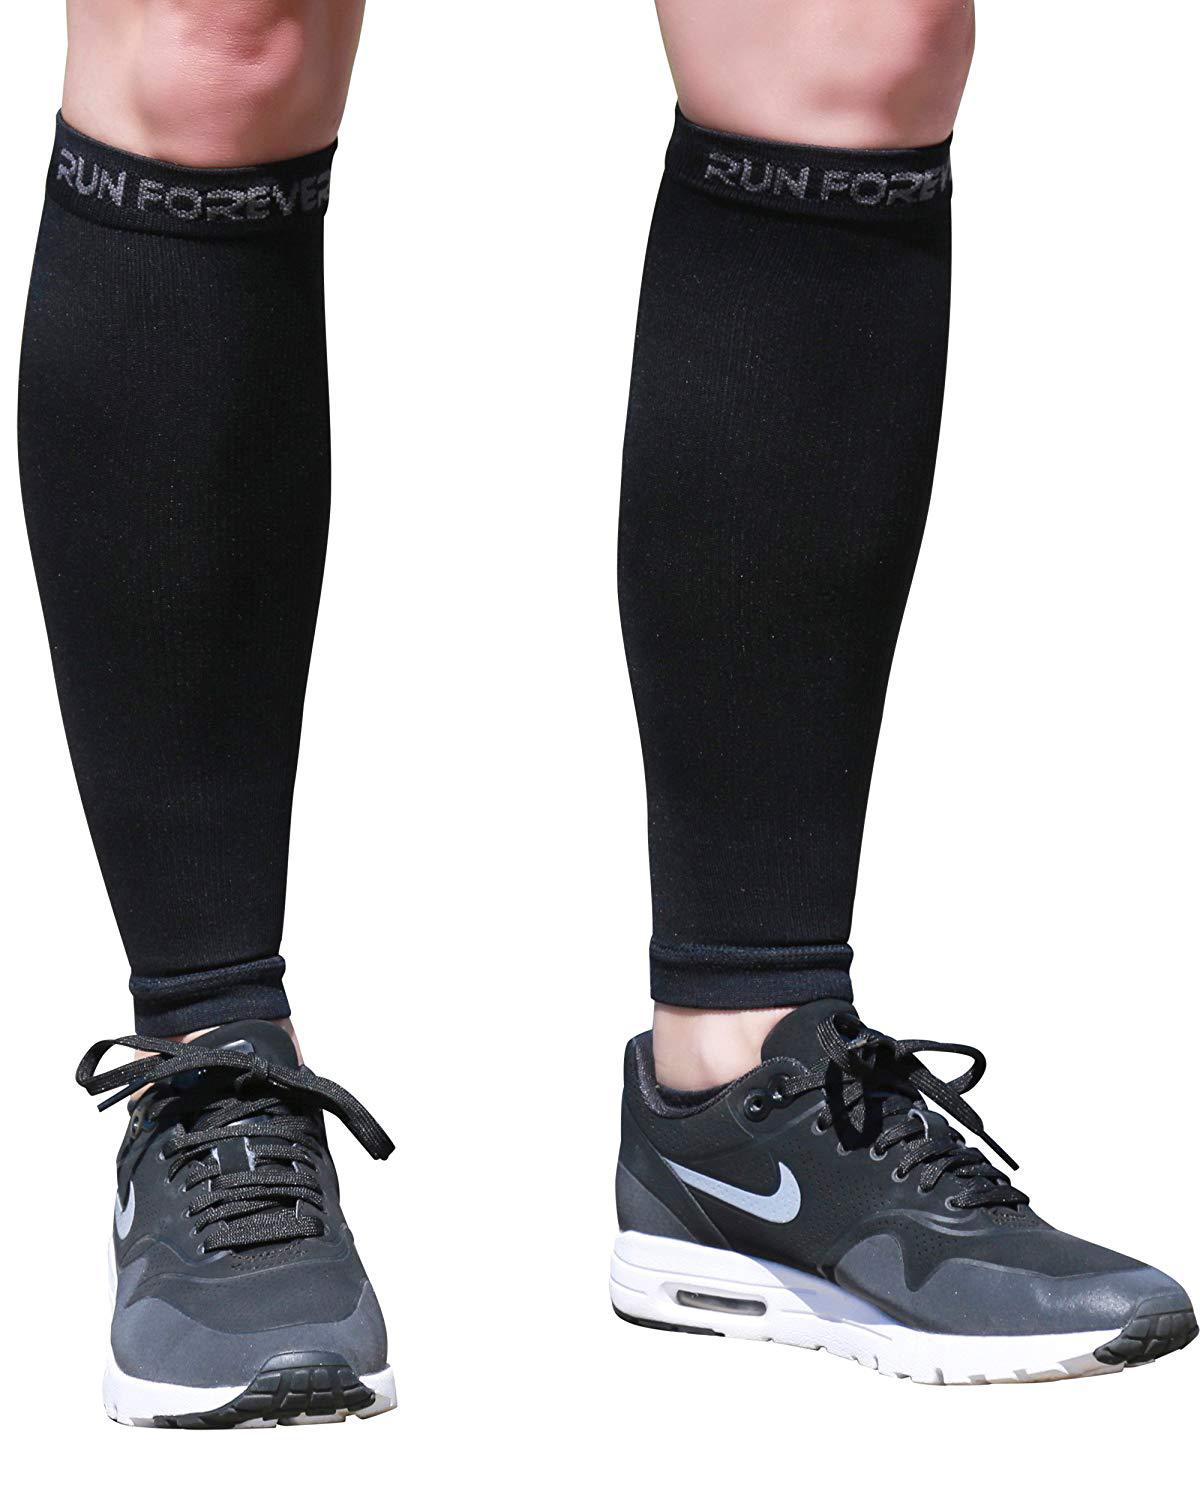 d205ee01273e3b The Best Calf Compression Sleeves for Shin Splints | MostCraft